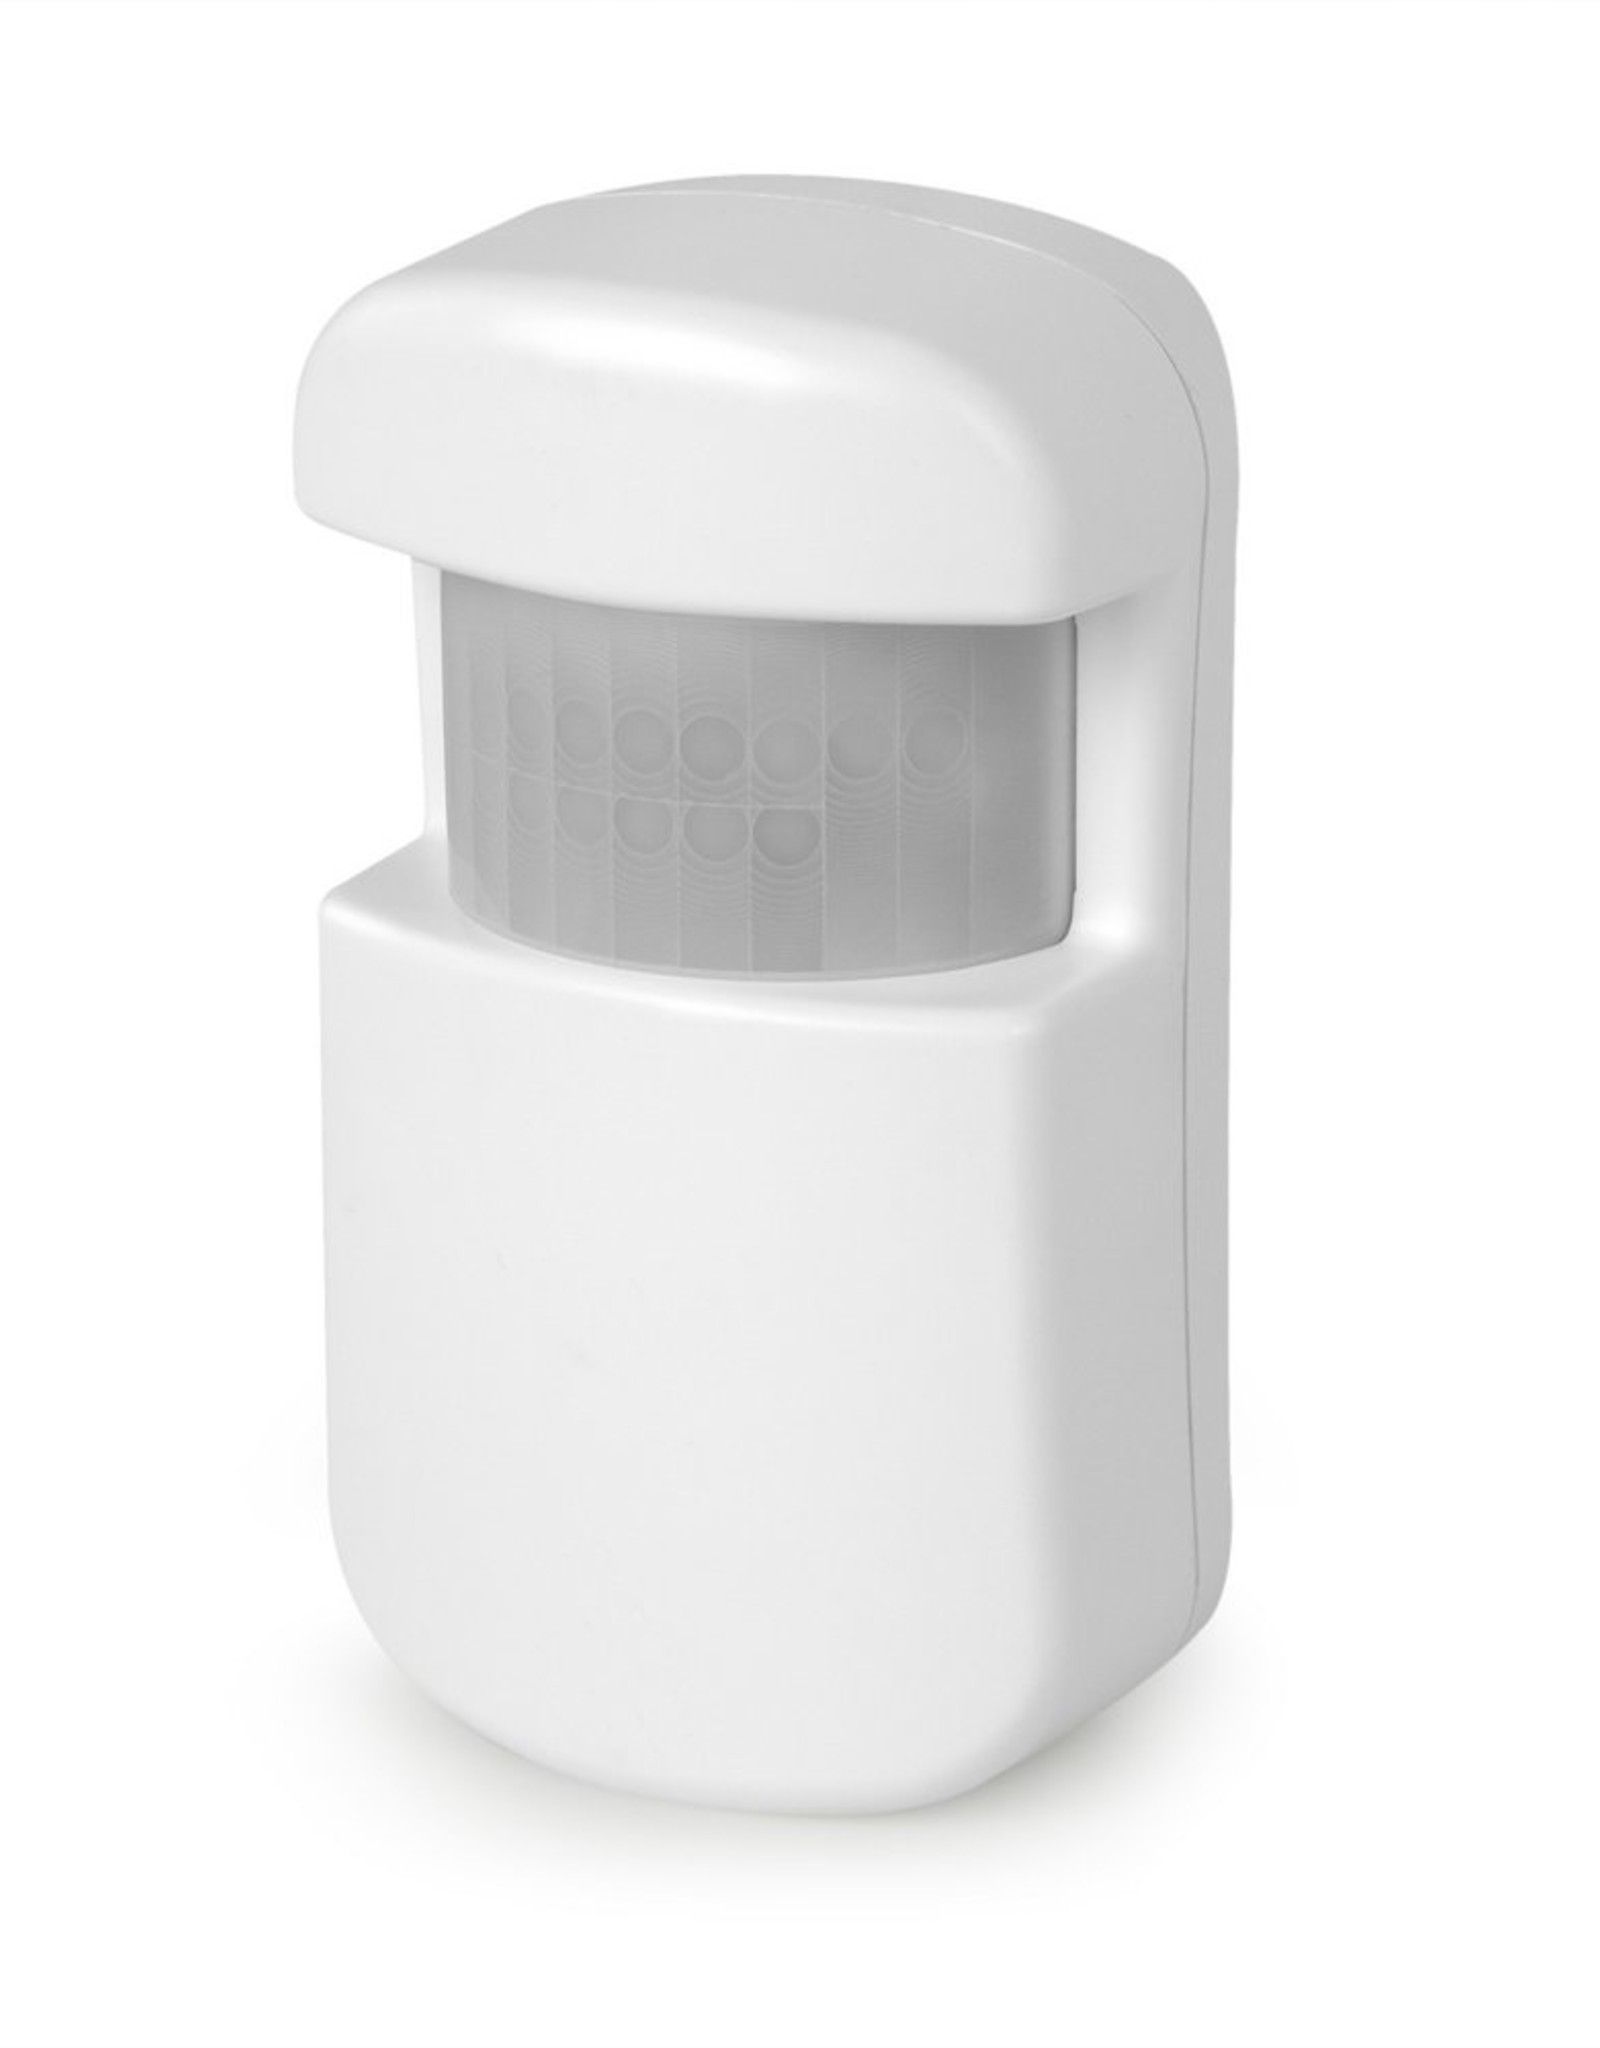 Wireless motion detector for 868MHz wireless alarm s